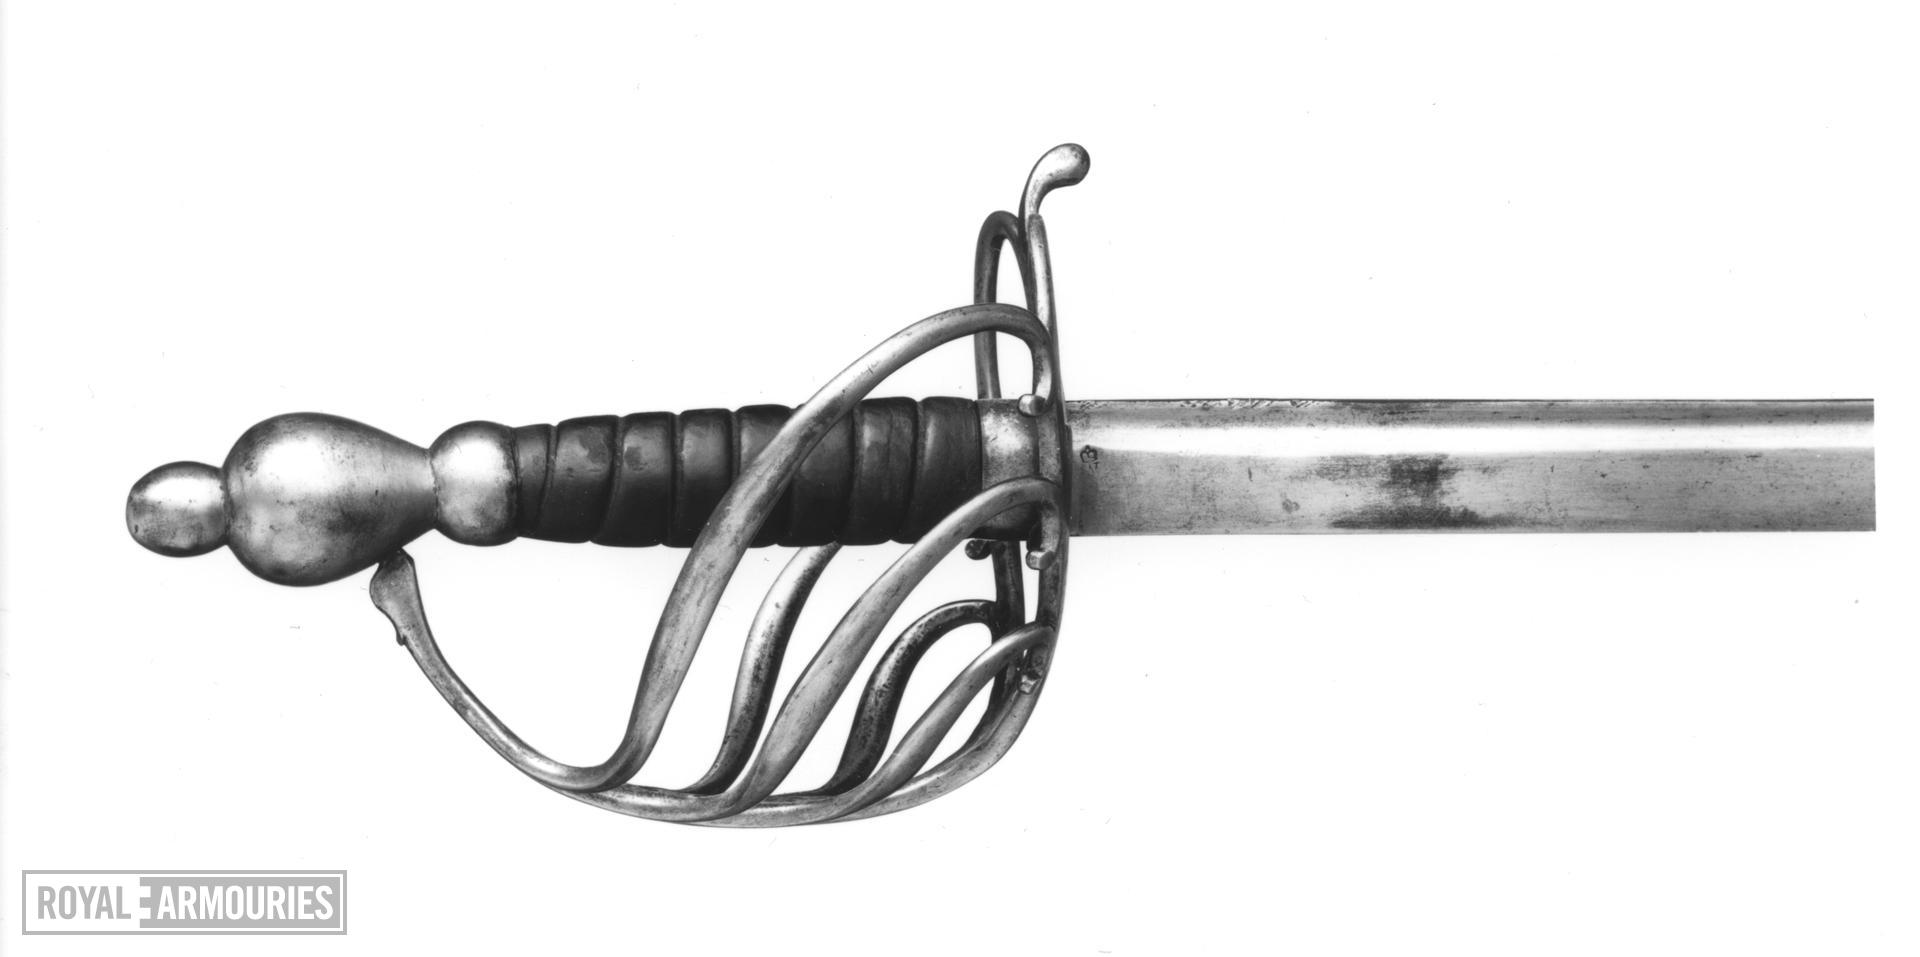 Sword Cavalry trooper's sword